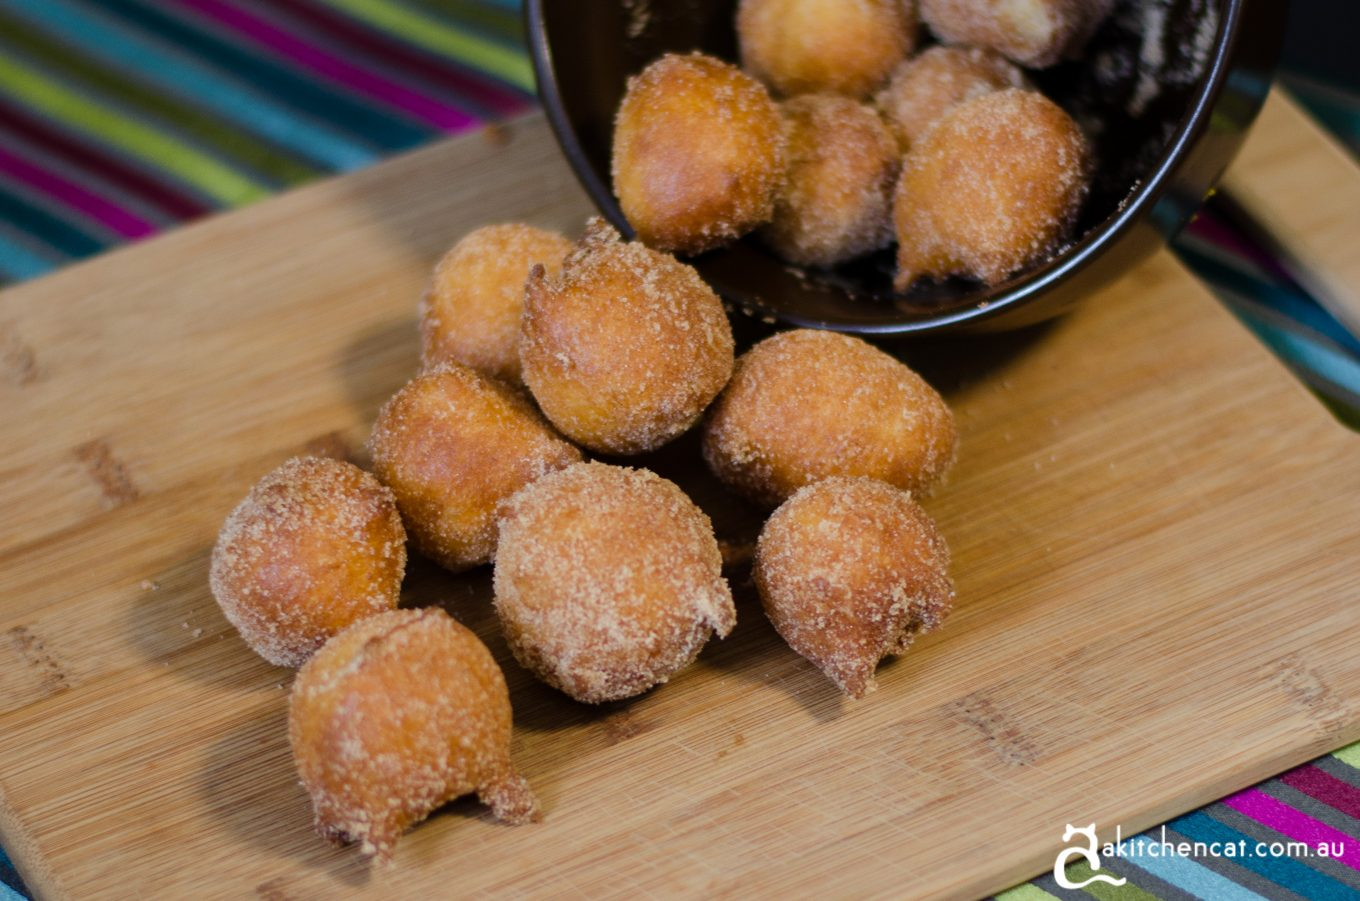 Old English Doughnuts with Cinnamon Sugar